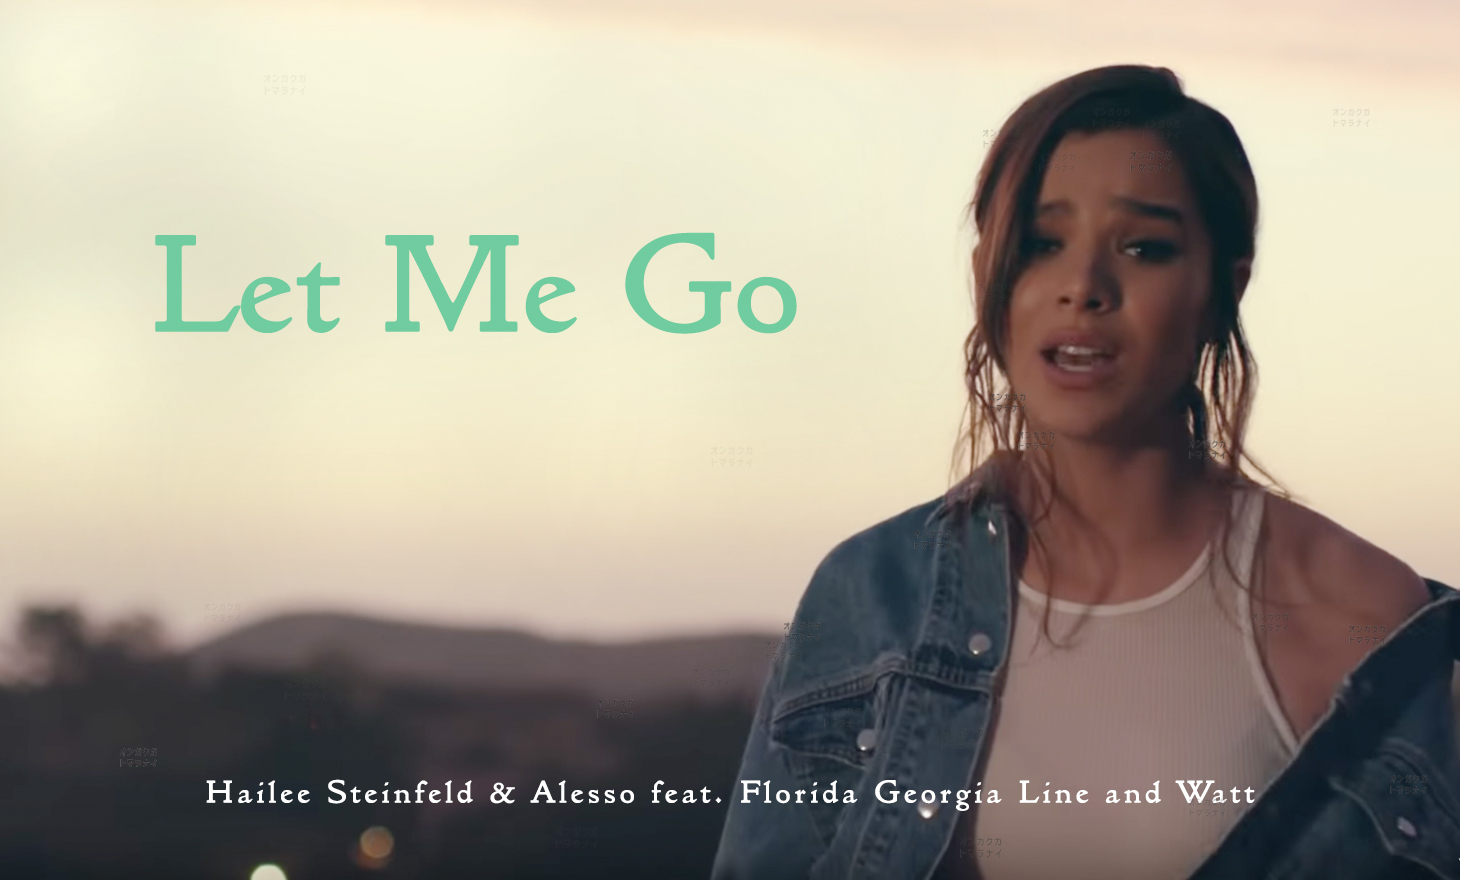 Hailee Steinfeld & Alesso : Let Me Go